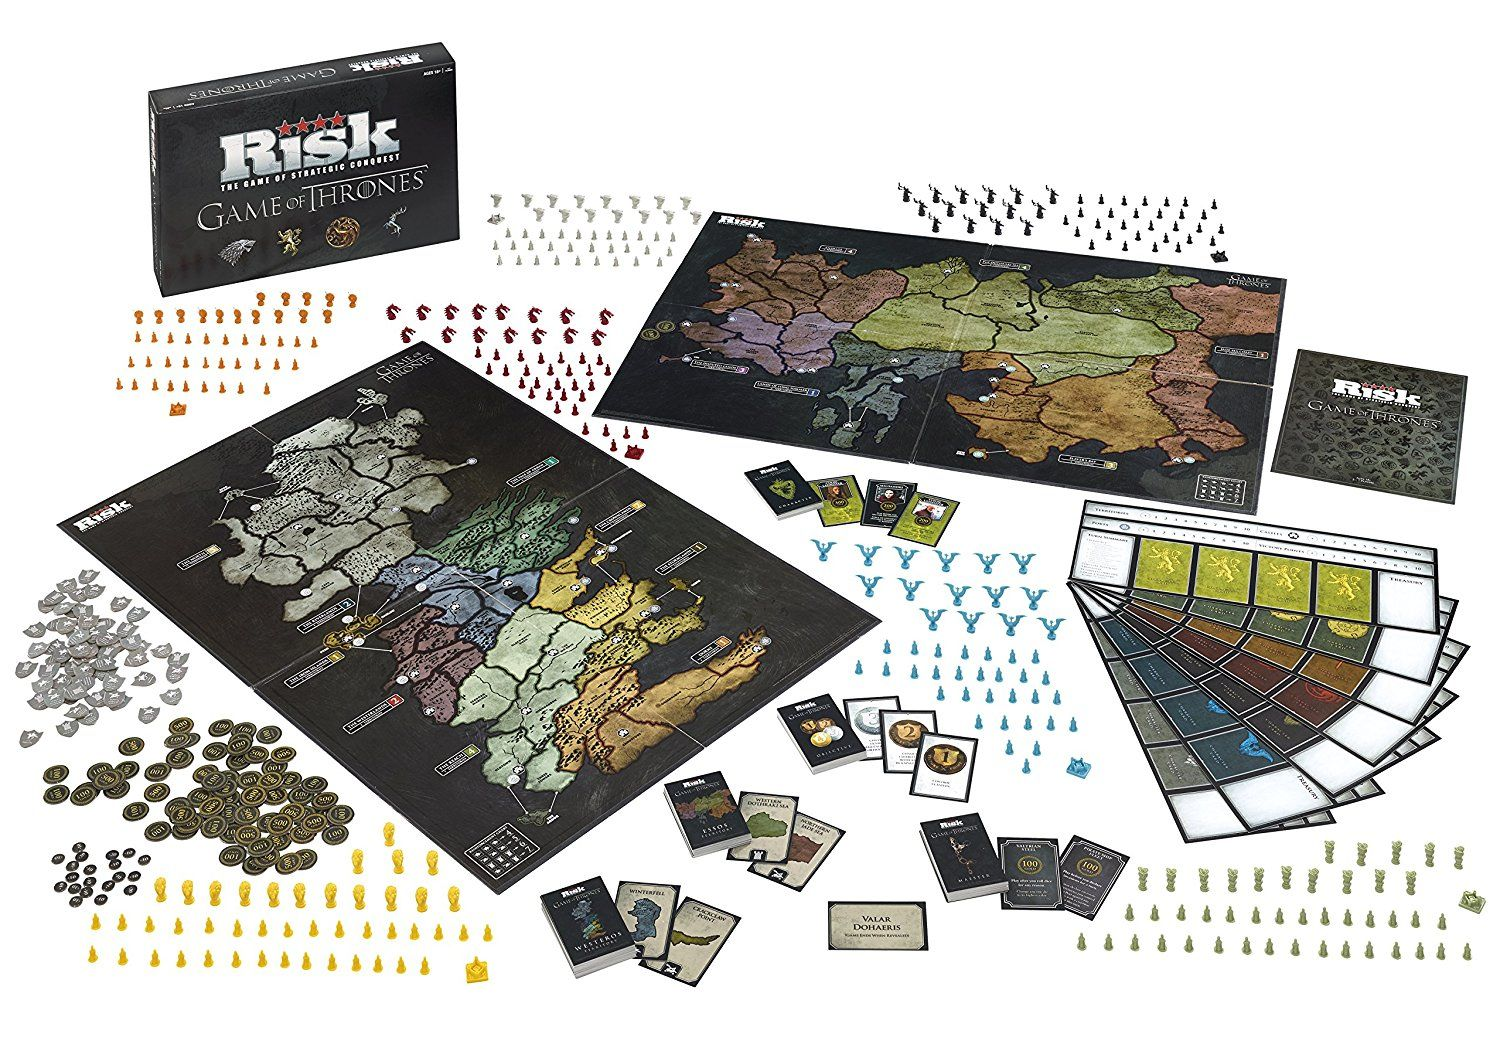 Game of Thrones RISK Deluxe Edition Risk games, Games